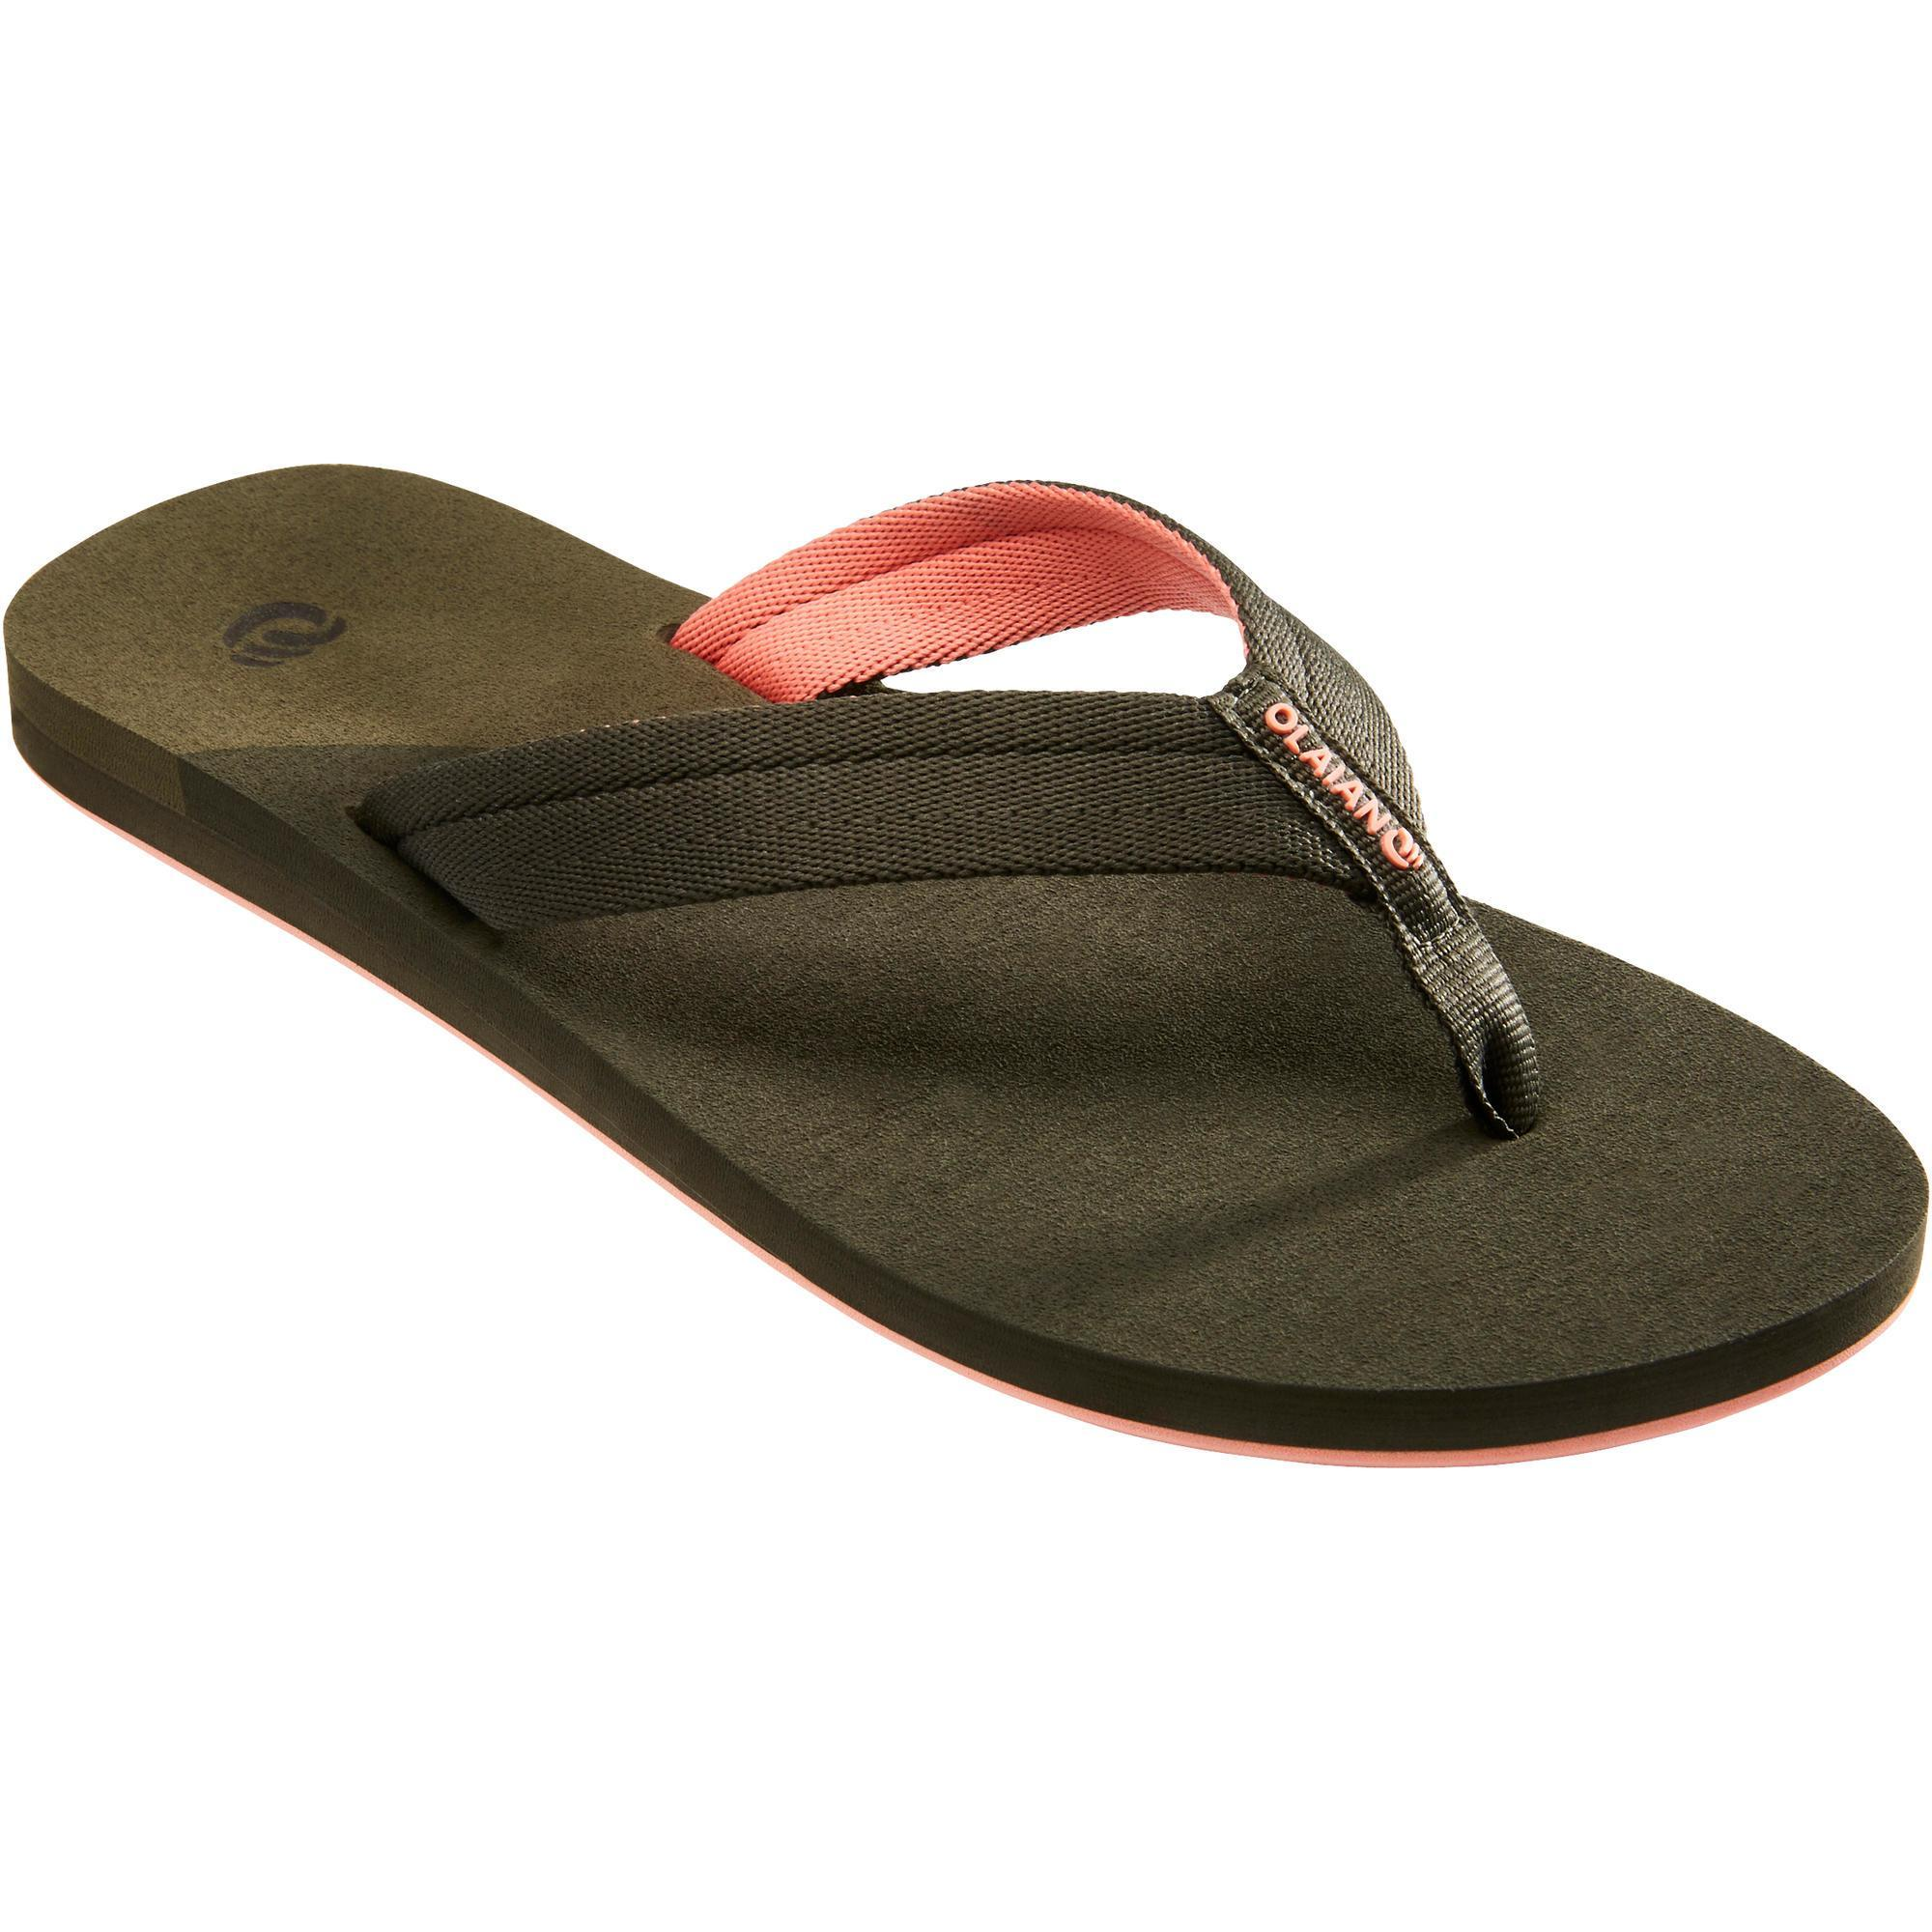 2544441 Olaian Slippers dames 550 Kaki